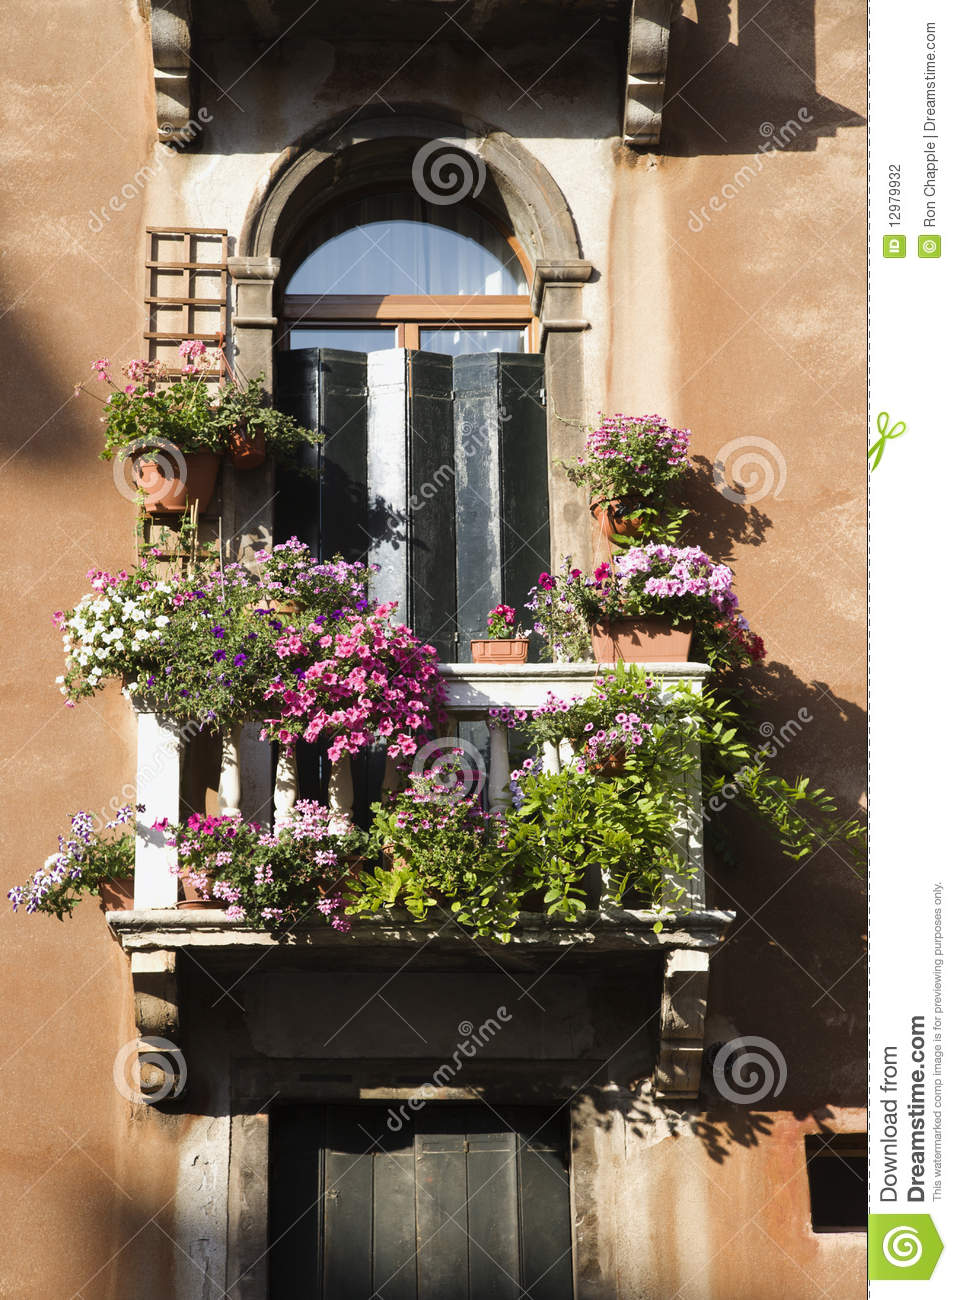 Balcony and flowers stock photography image 12979932 for Balcony flowers